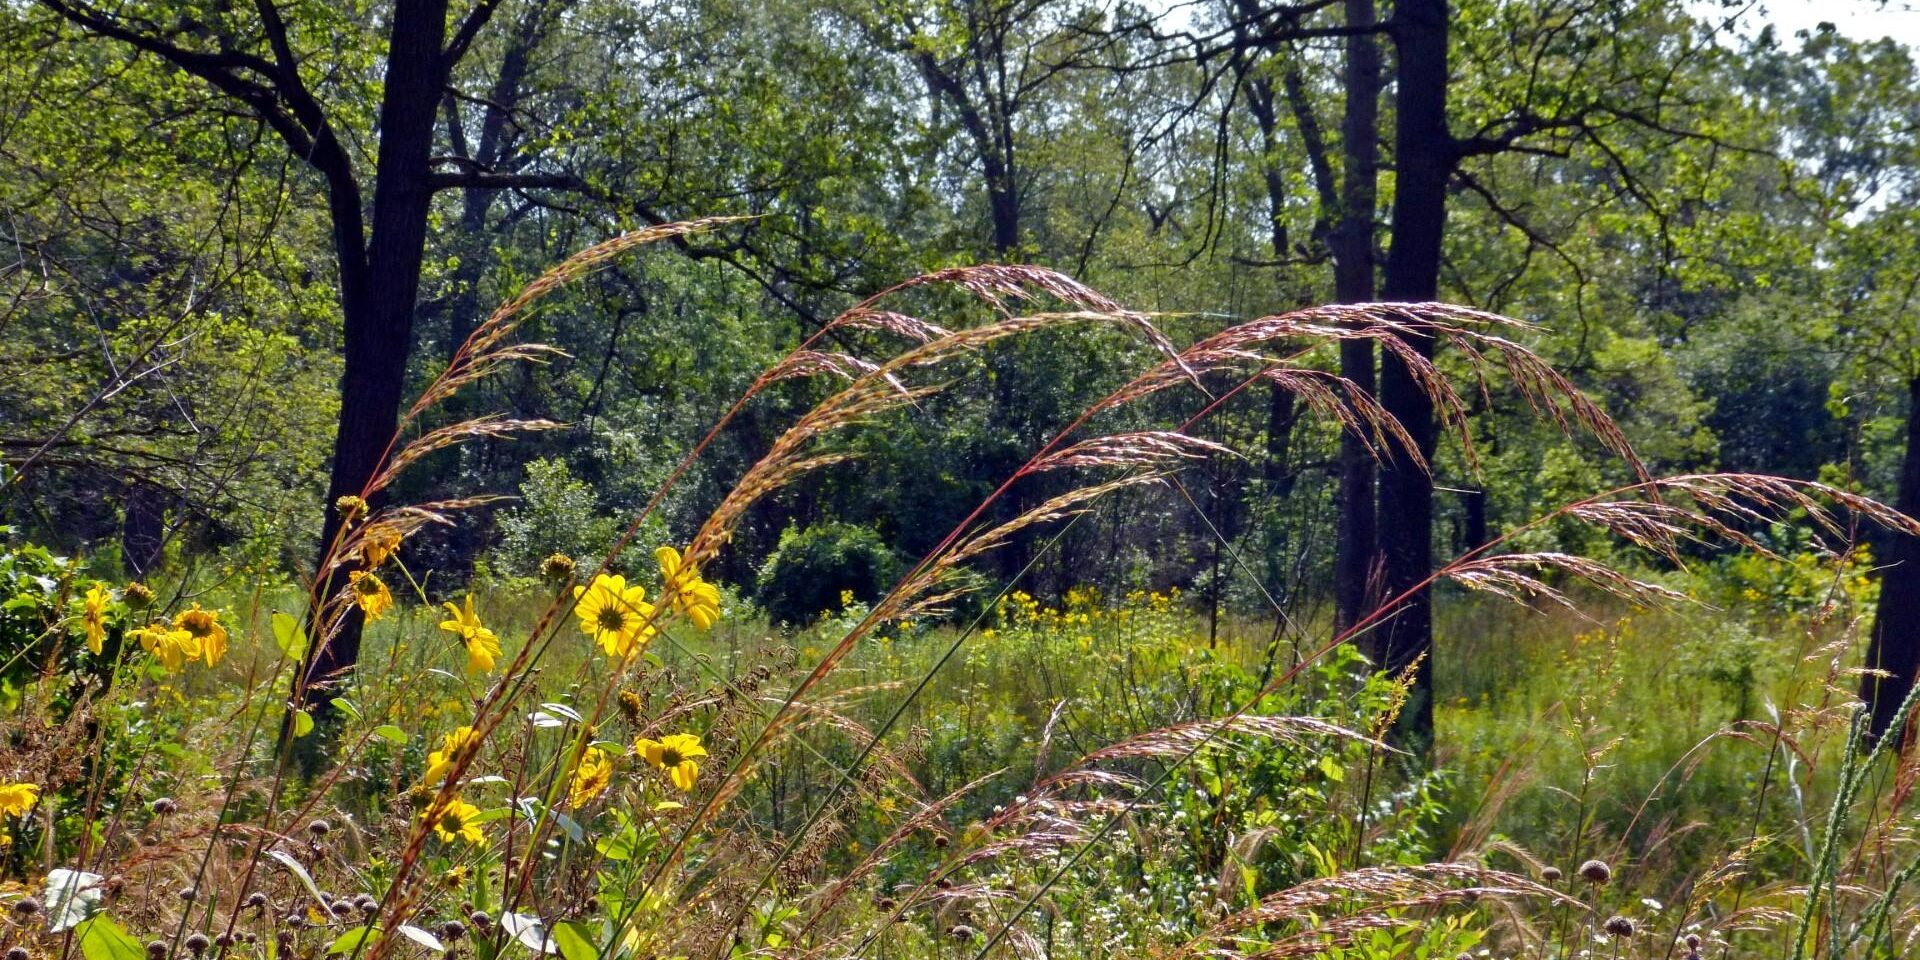 Indian Grass in the Black Oak Savannah. Photo: Karen Yukich